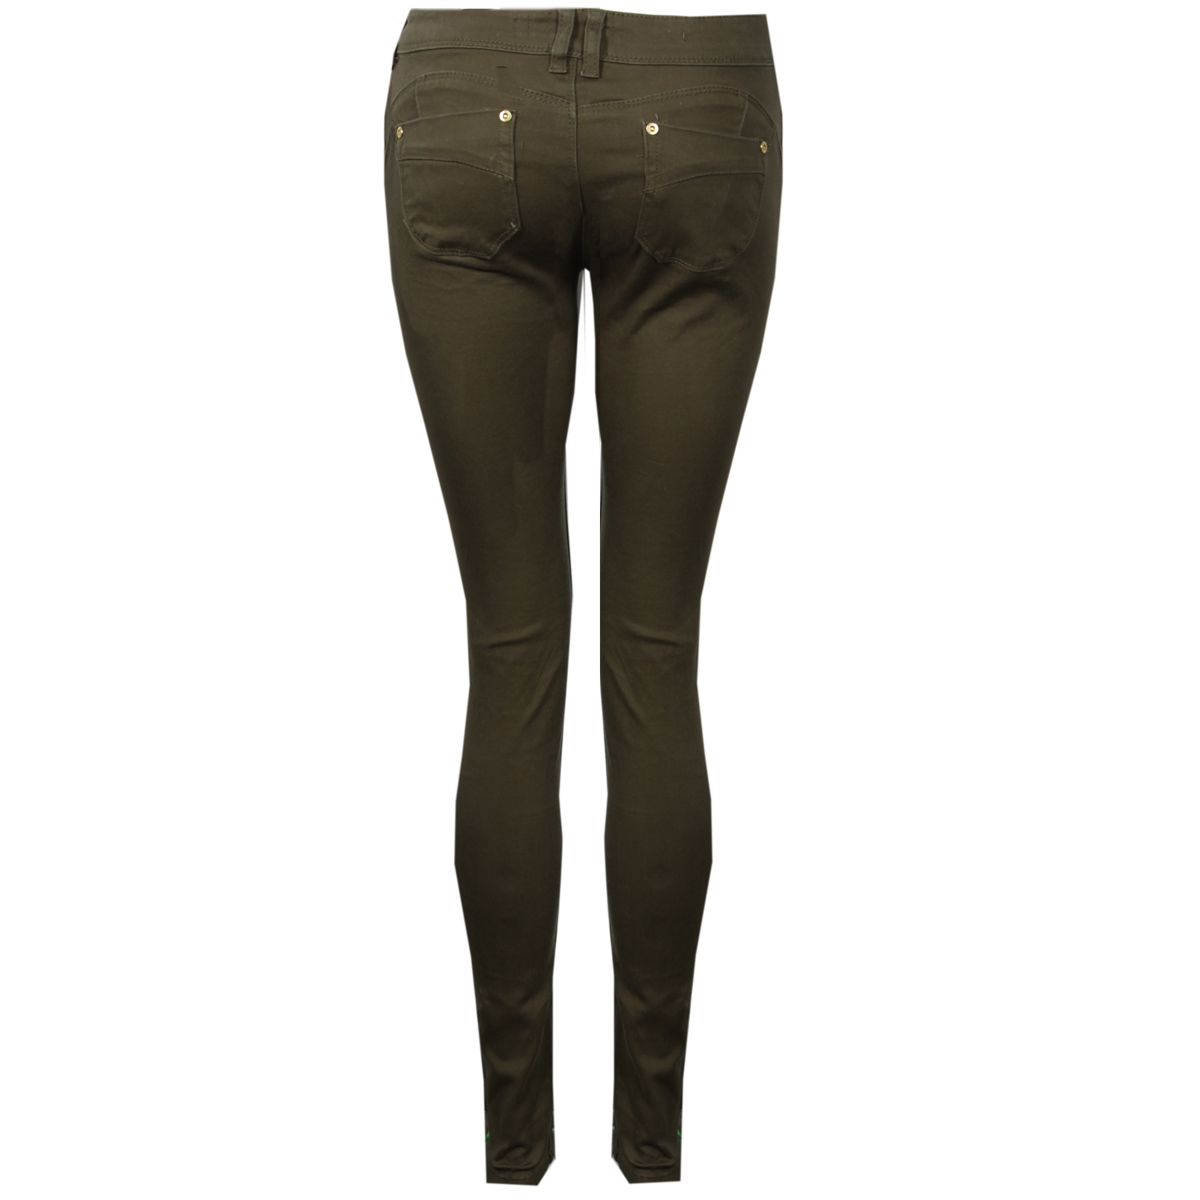 Original NEW LADIES COMBAT SKINNY FIT JEANS WOMEN ZIP CARGO KHAKI TROUSERS SLIM